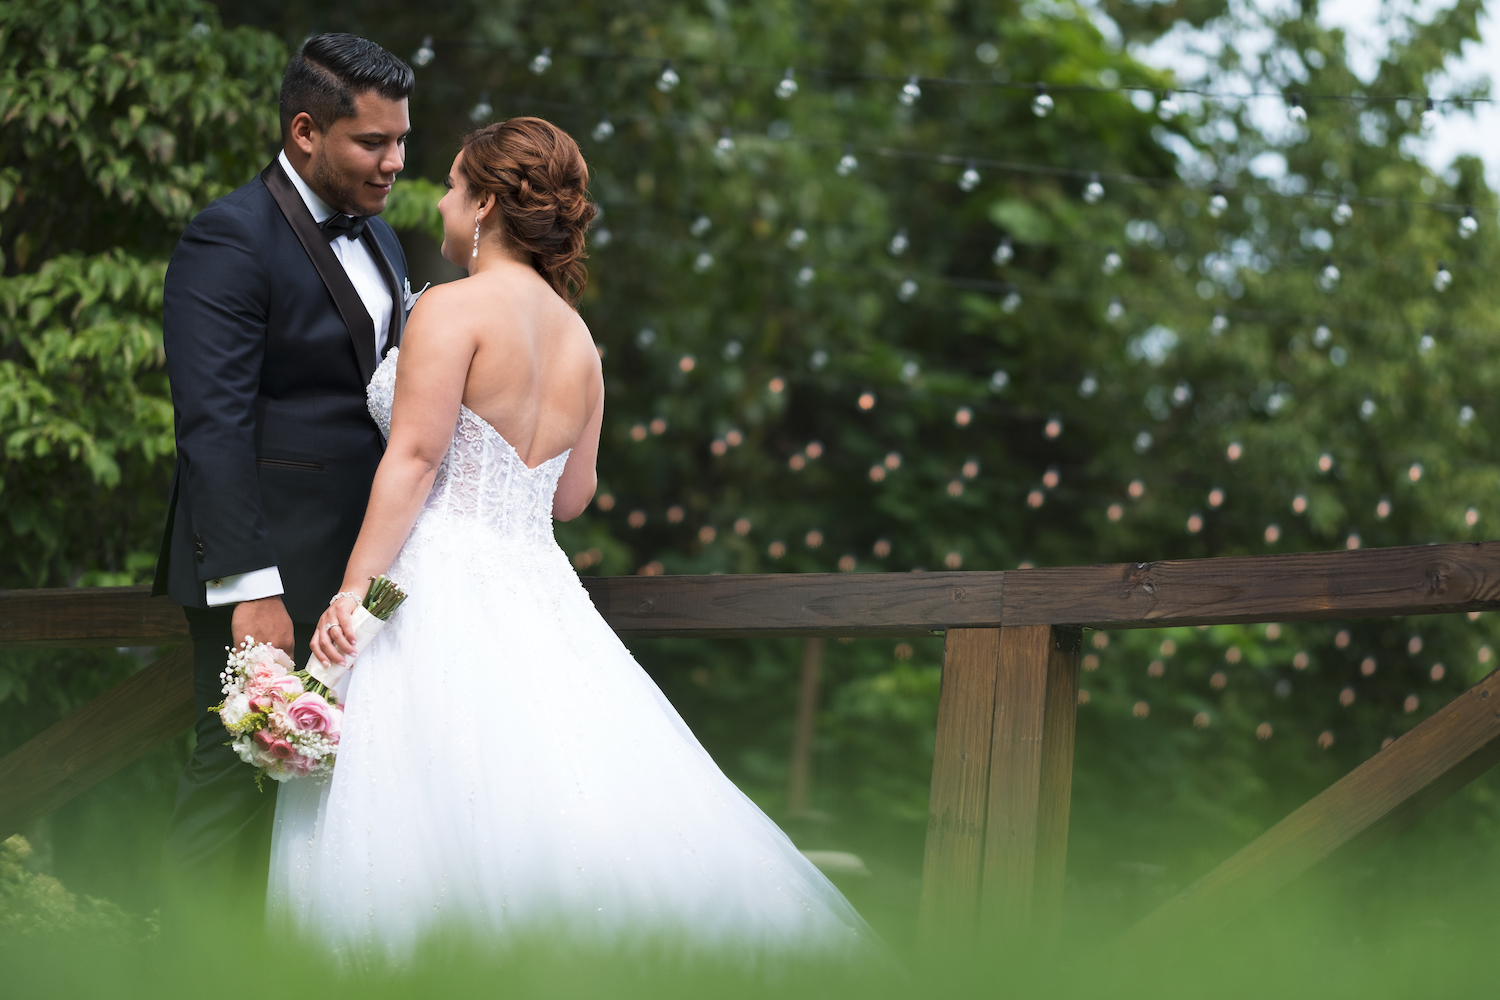 Annette and Jay – Wedding Photo Highlights from The Hamilton Manor in Hamilton Township, NJ